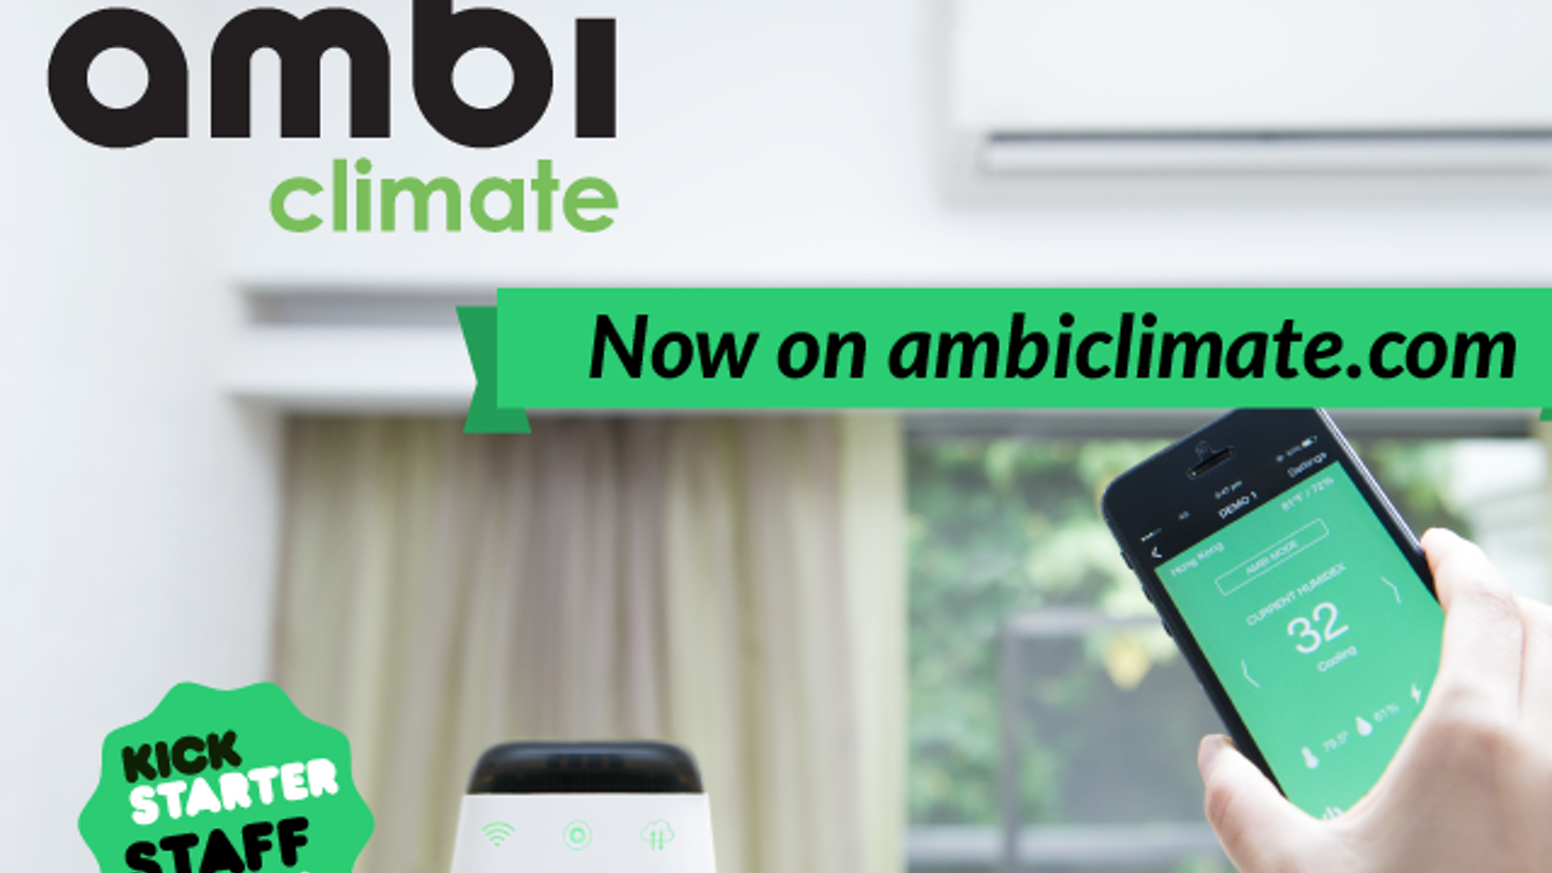 Learns about your habits & home environment. Auto adjusts AC for ideal temperature & energy savings. Remote access via Android/iPhone.